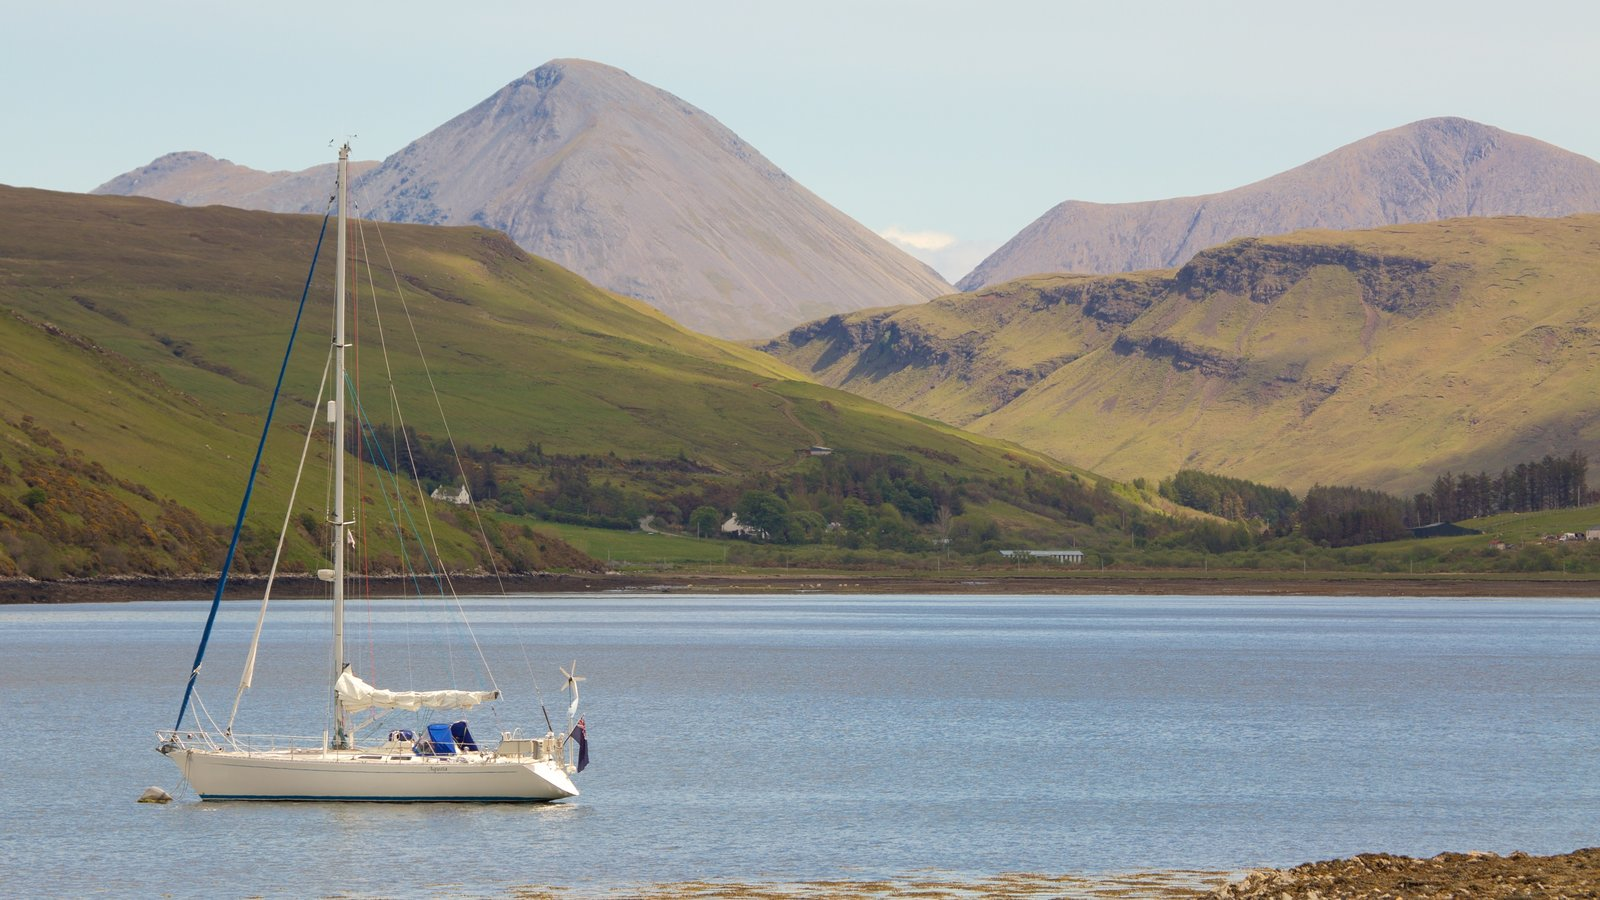 Talisker Distillery which includes mountains, sailing and general coastal views